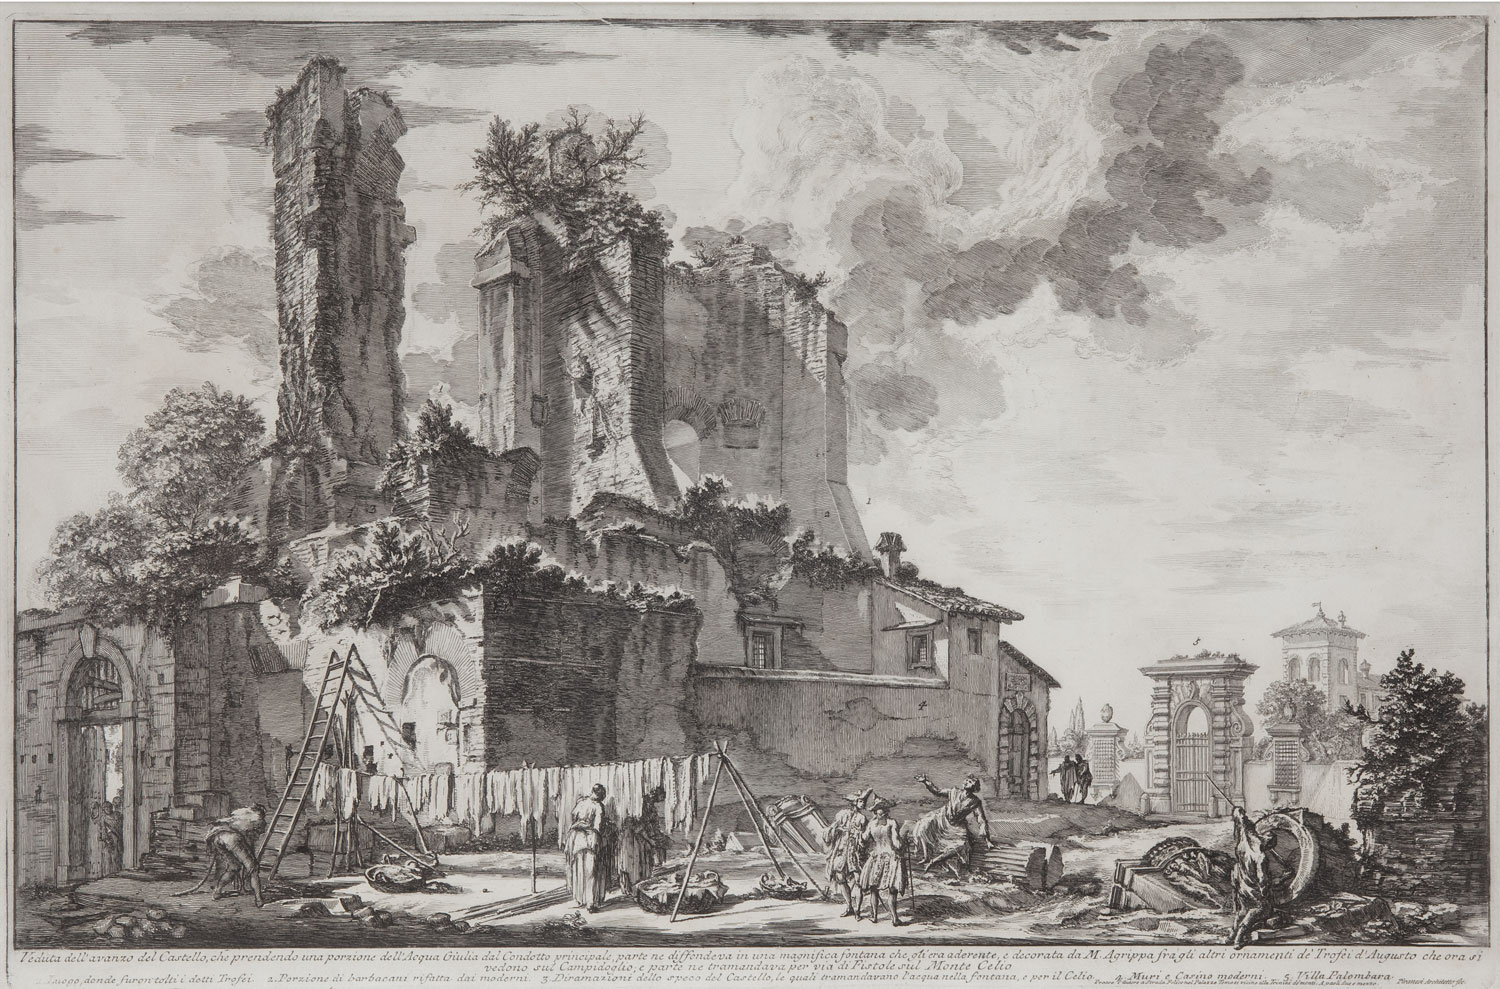 Veduta dell'avanzo del castello, Giovanni Battista Piranesi